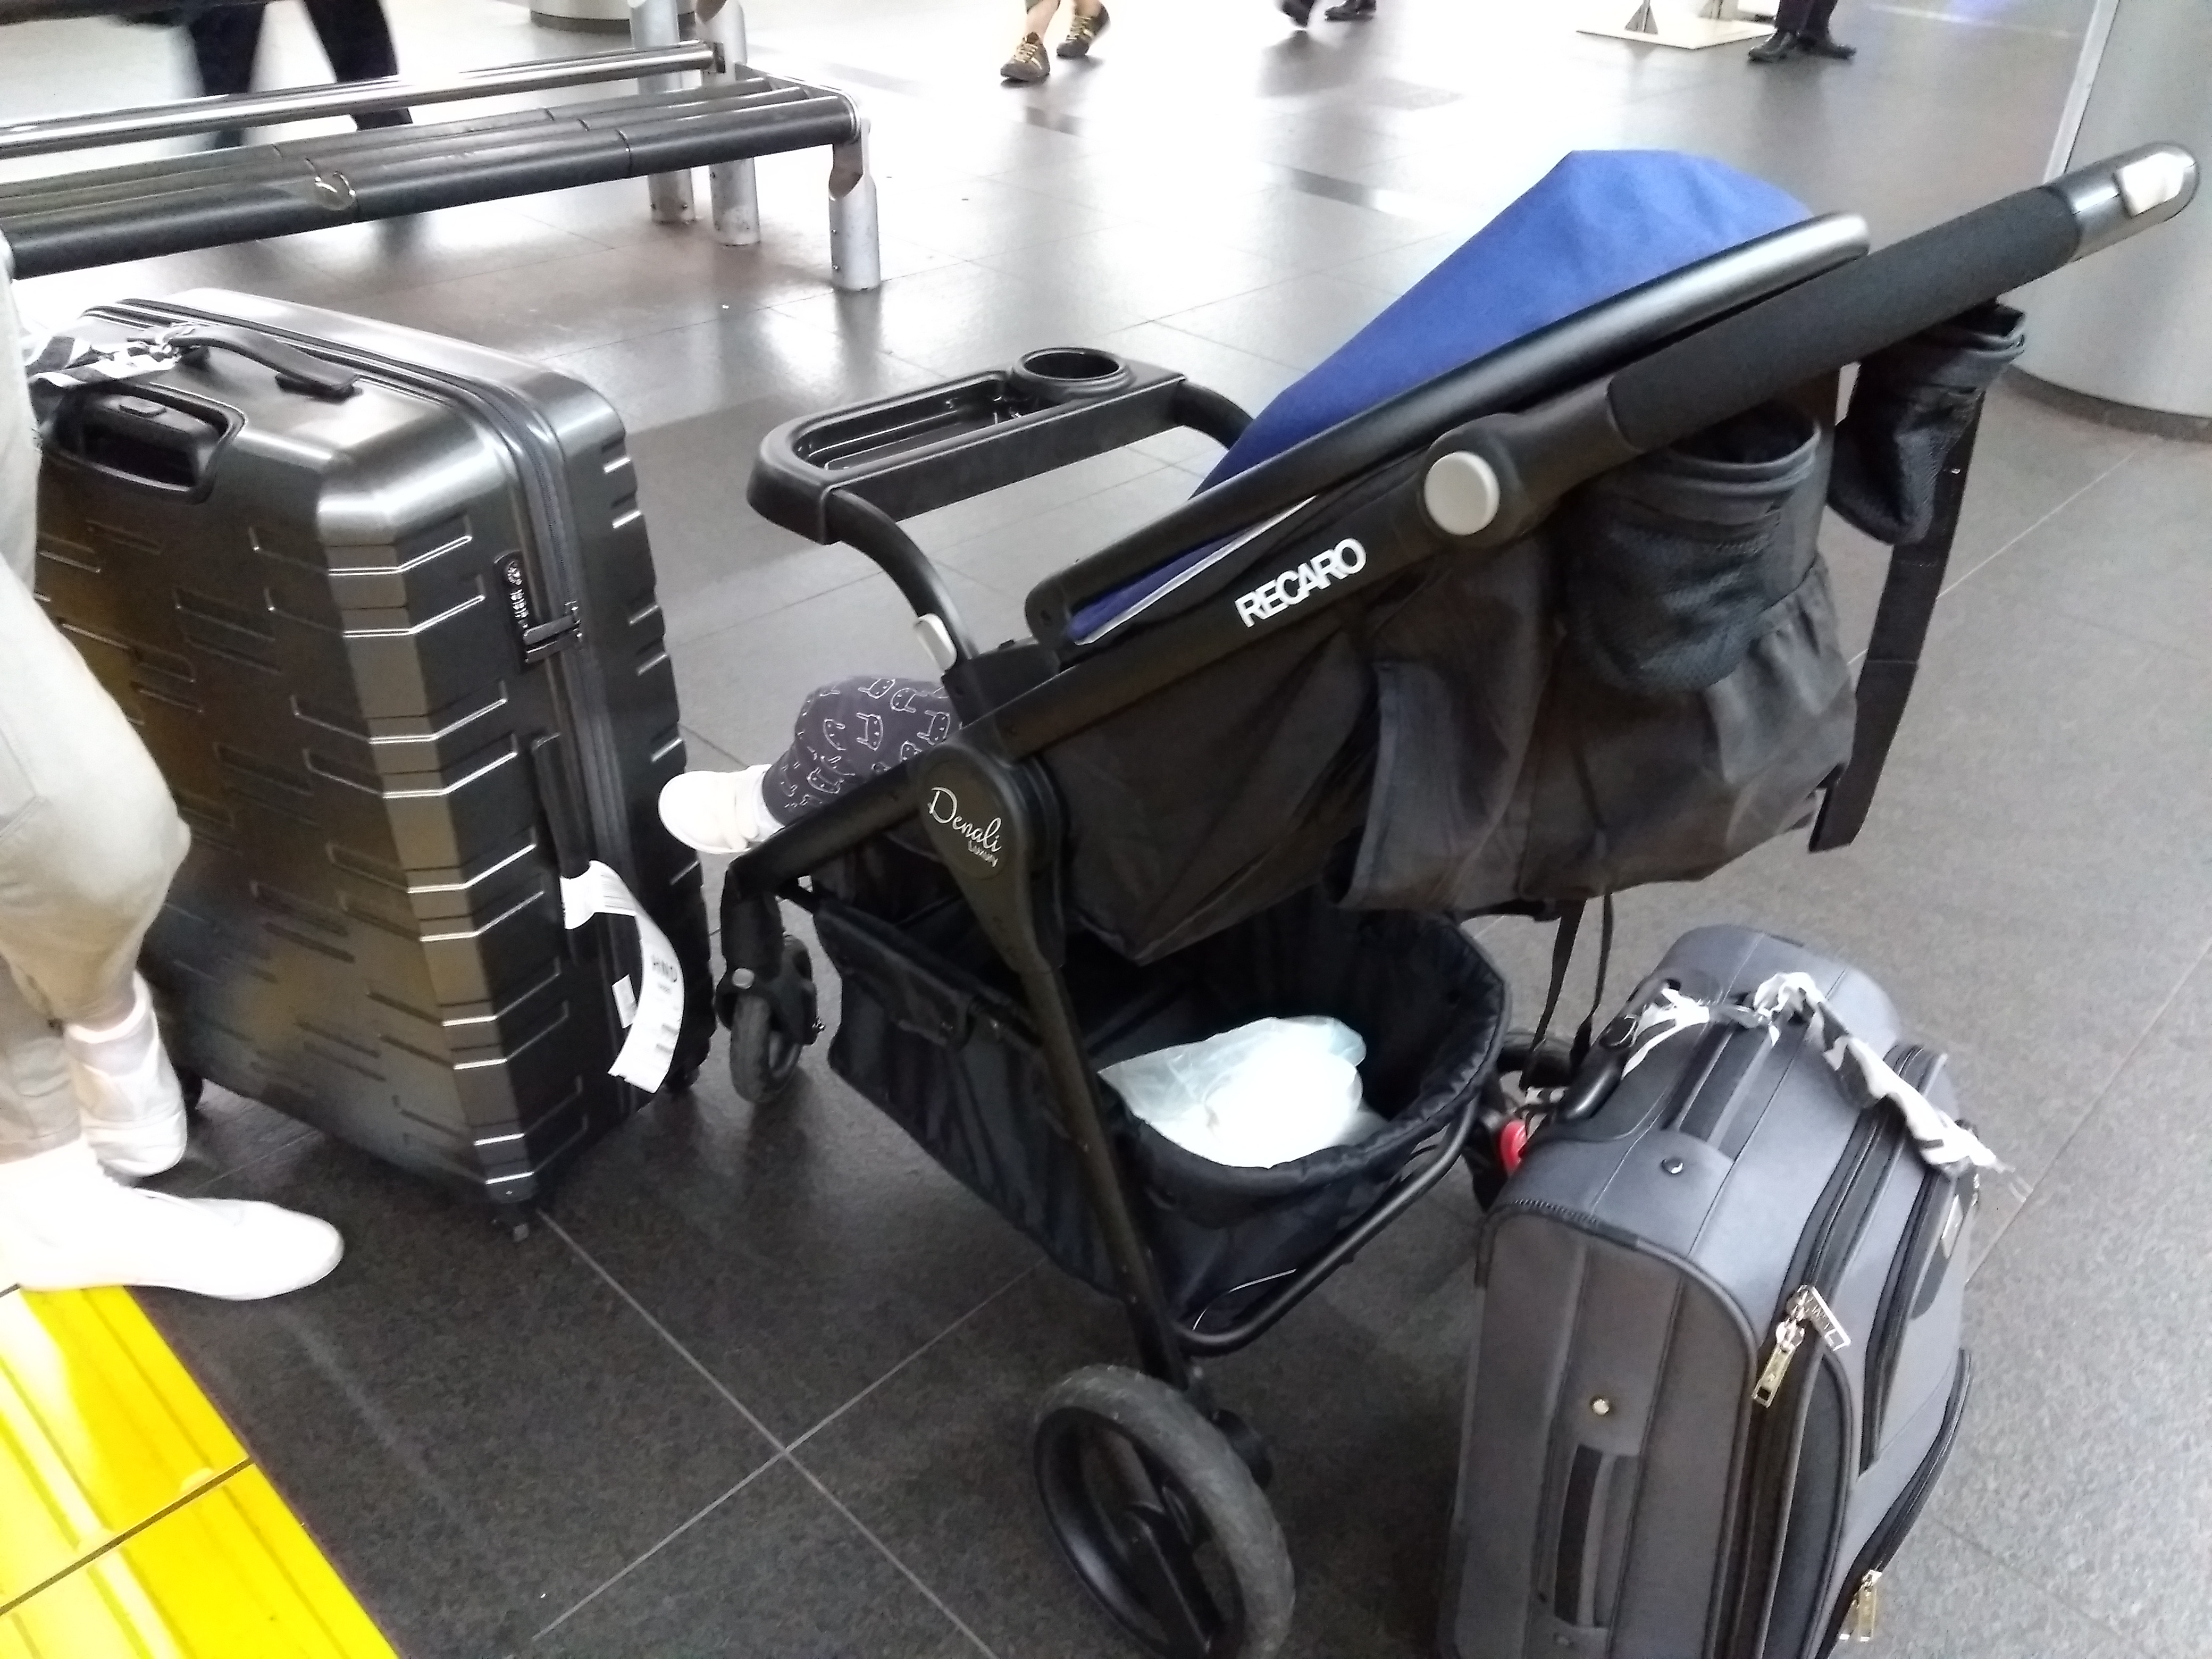 10 hour flight to Tokyo - luggage